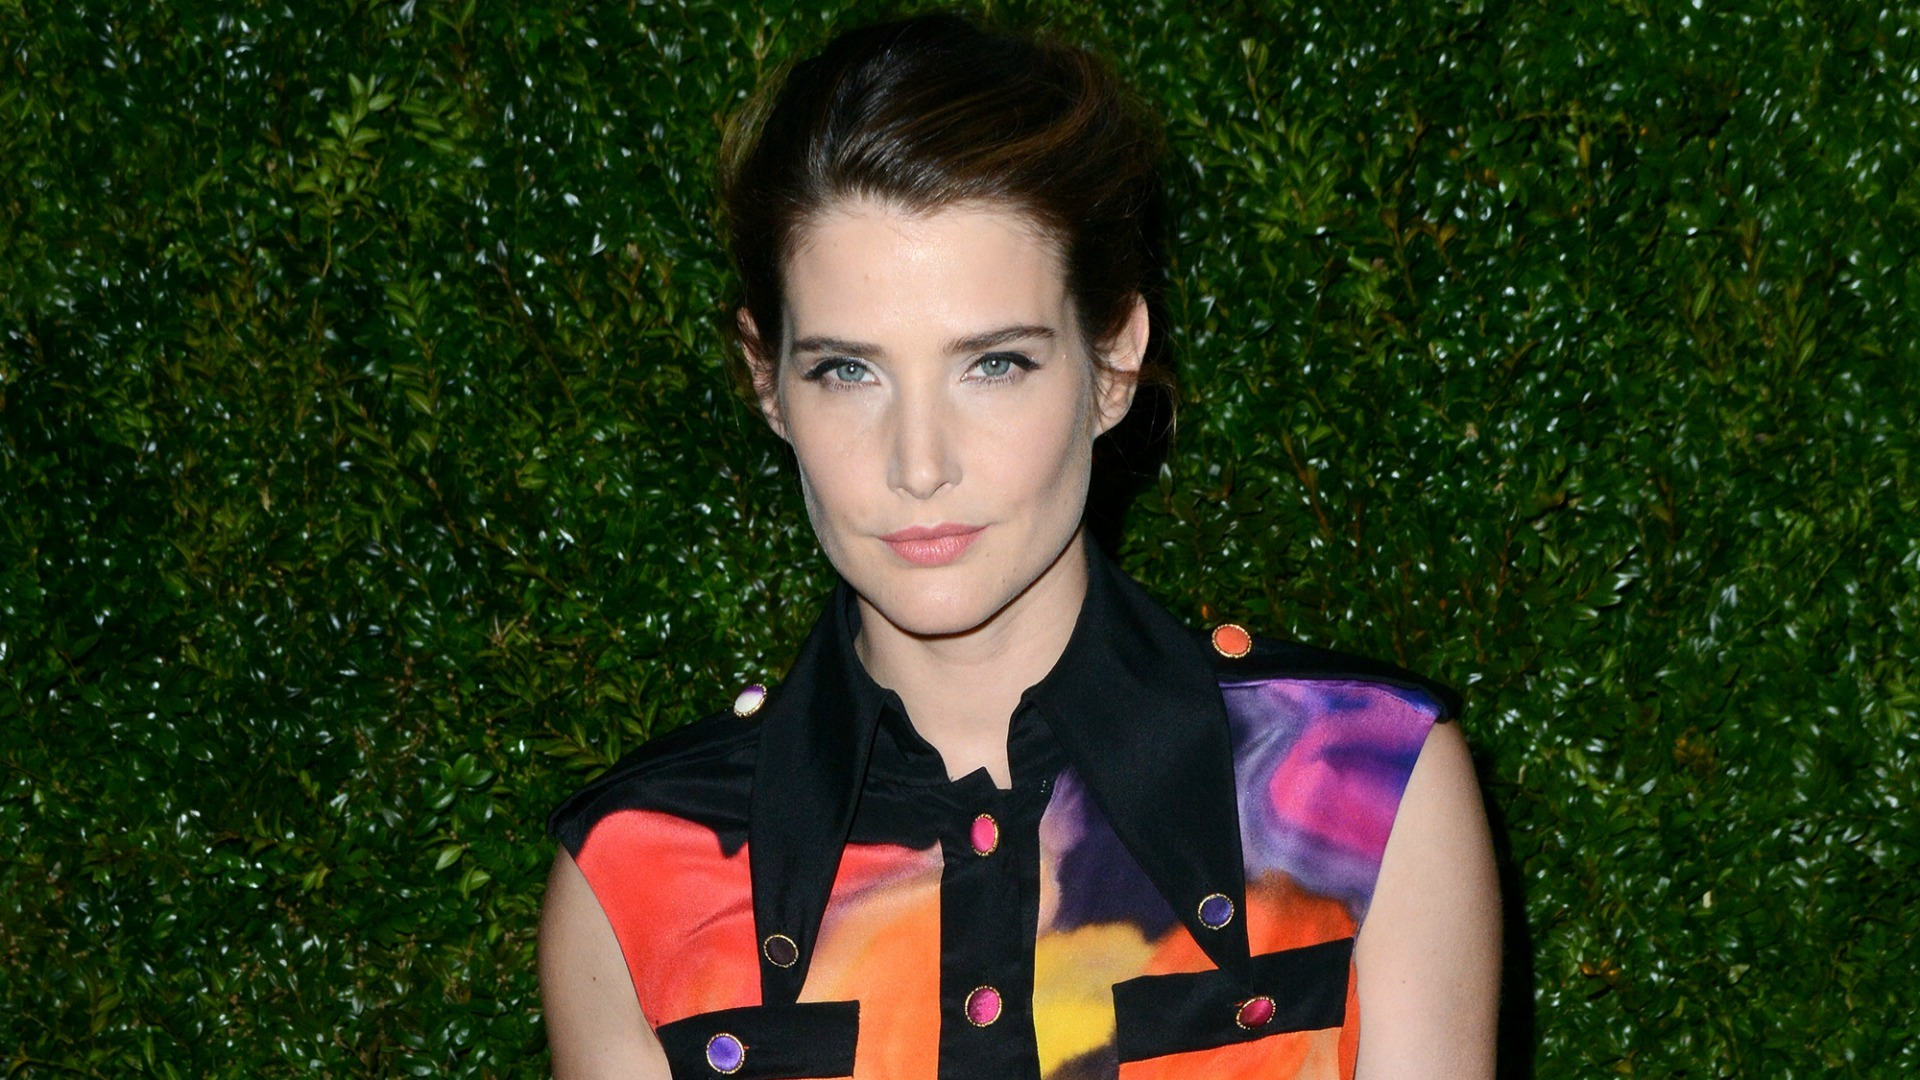 cobie smulders wallpapers high resolution and quality download